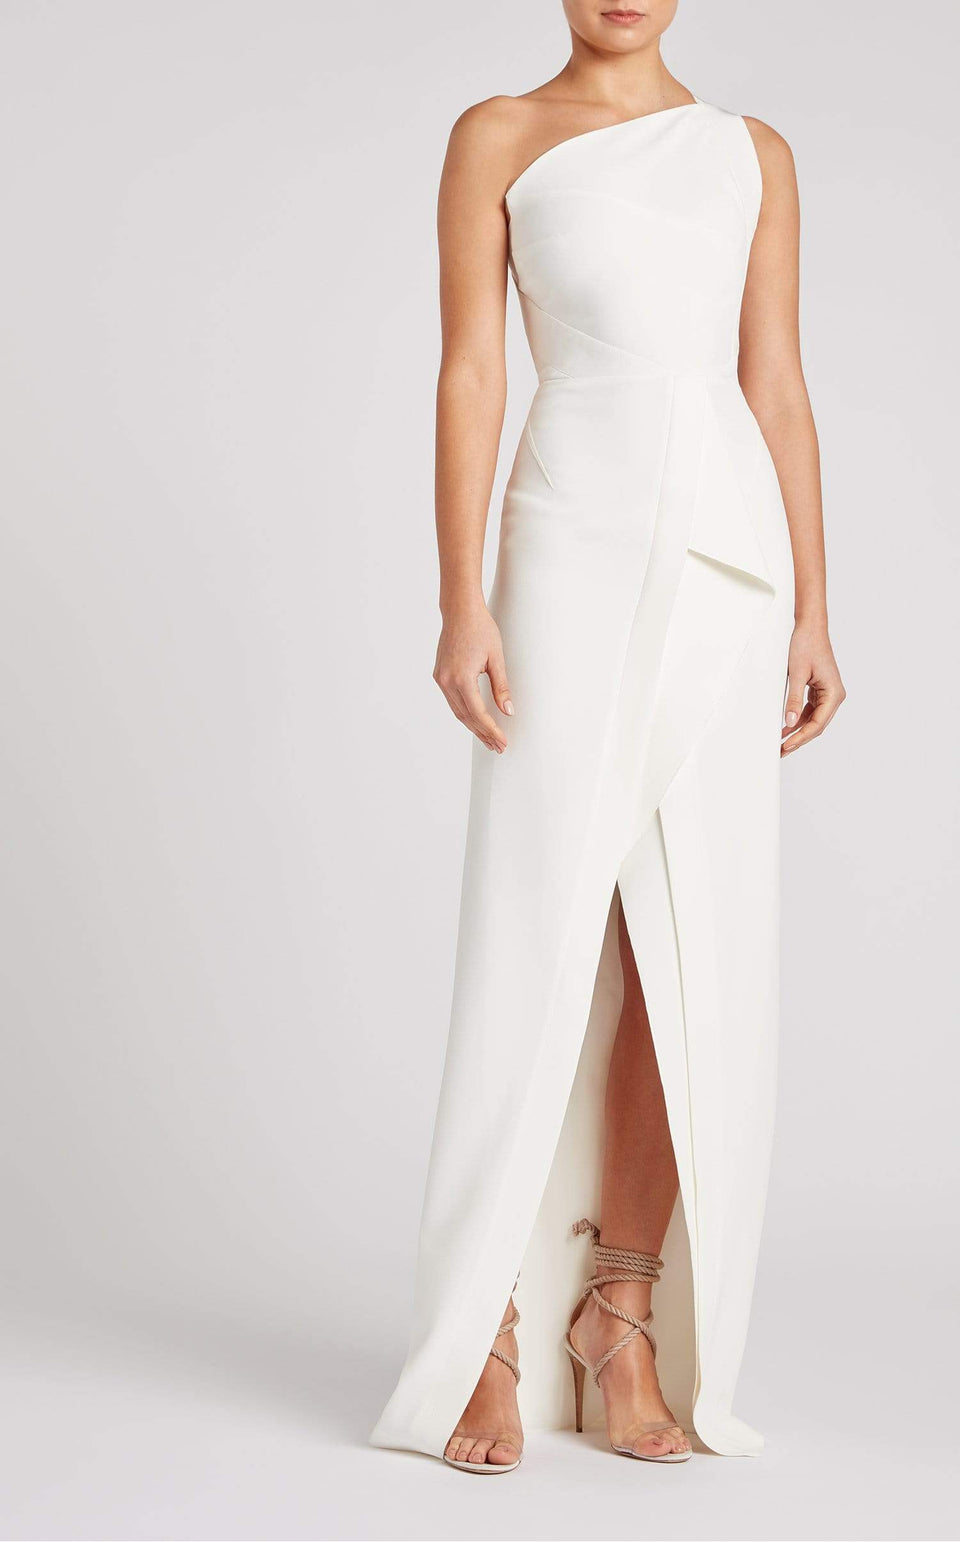 Lilyvick Gown In White from Roland Mouret